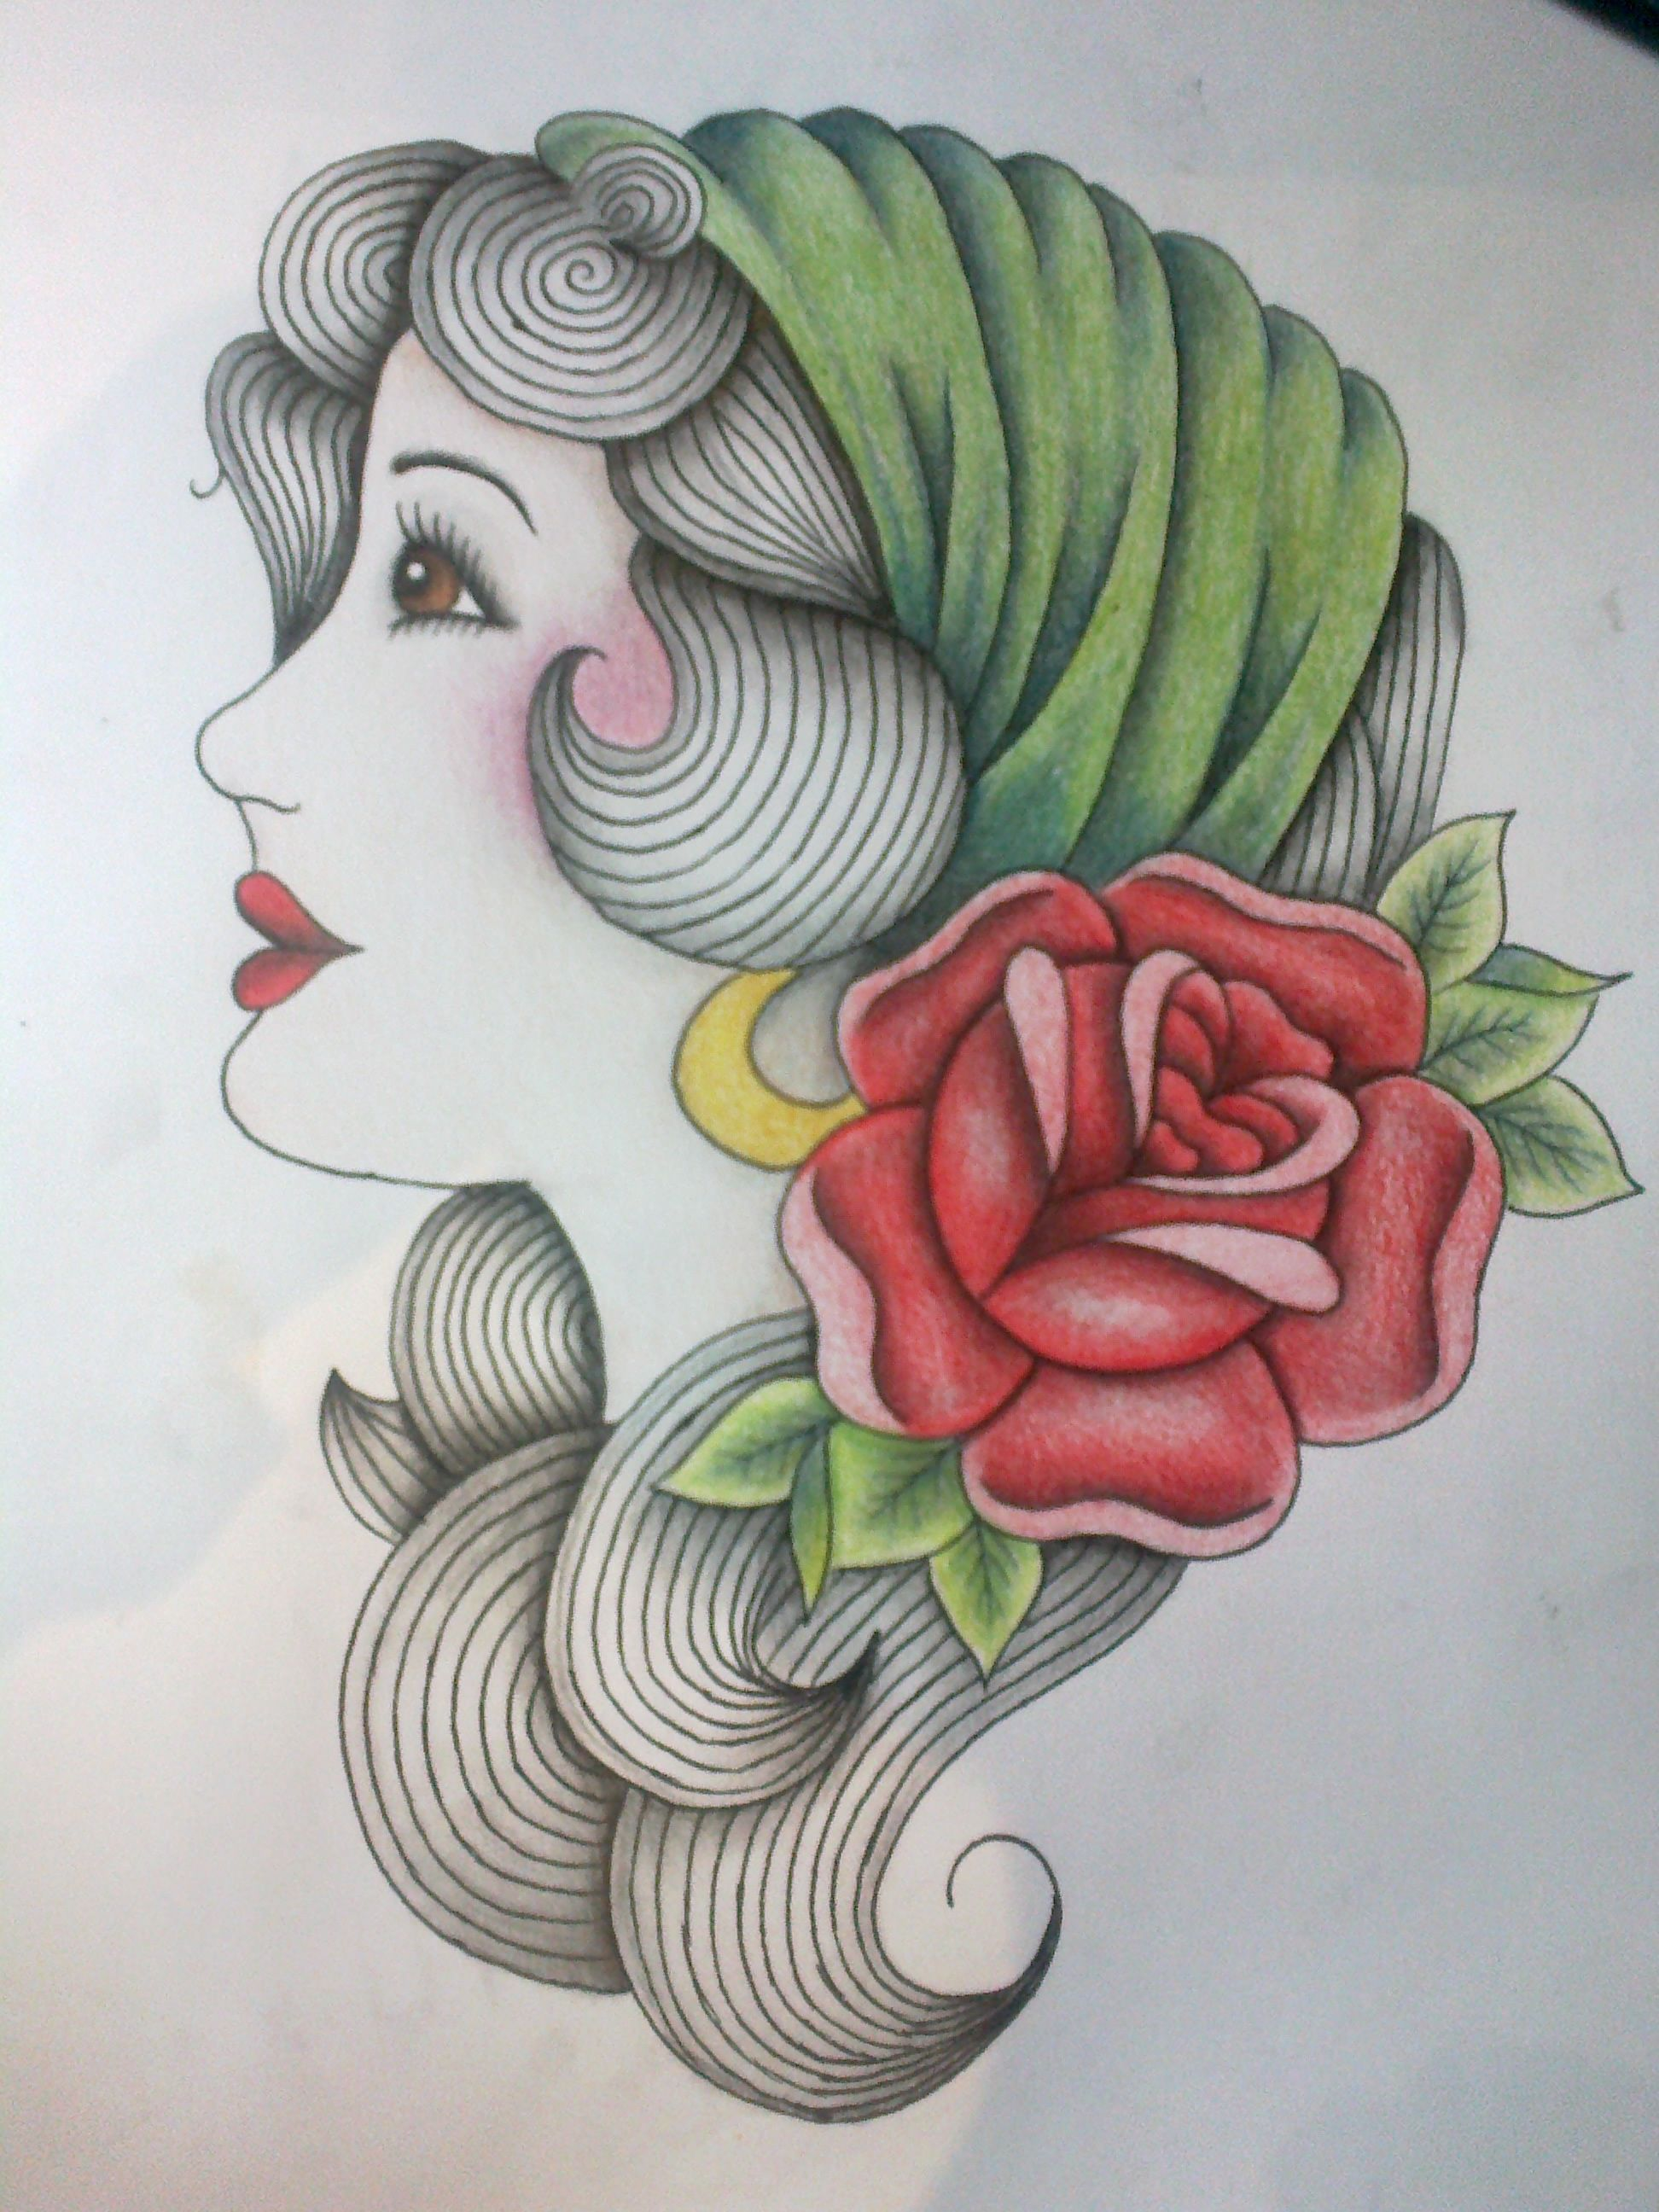 I Don T Like The Face But The Rest I Want For My Gypsy Tattoo Gypsy Tattoo Red Rose Tattoo Tattoo Sketches